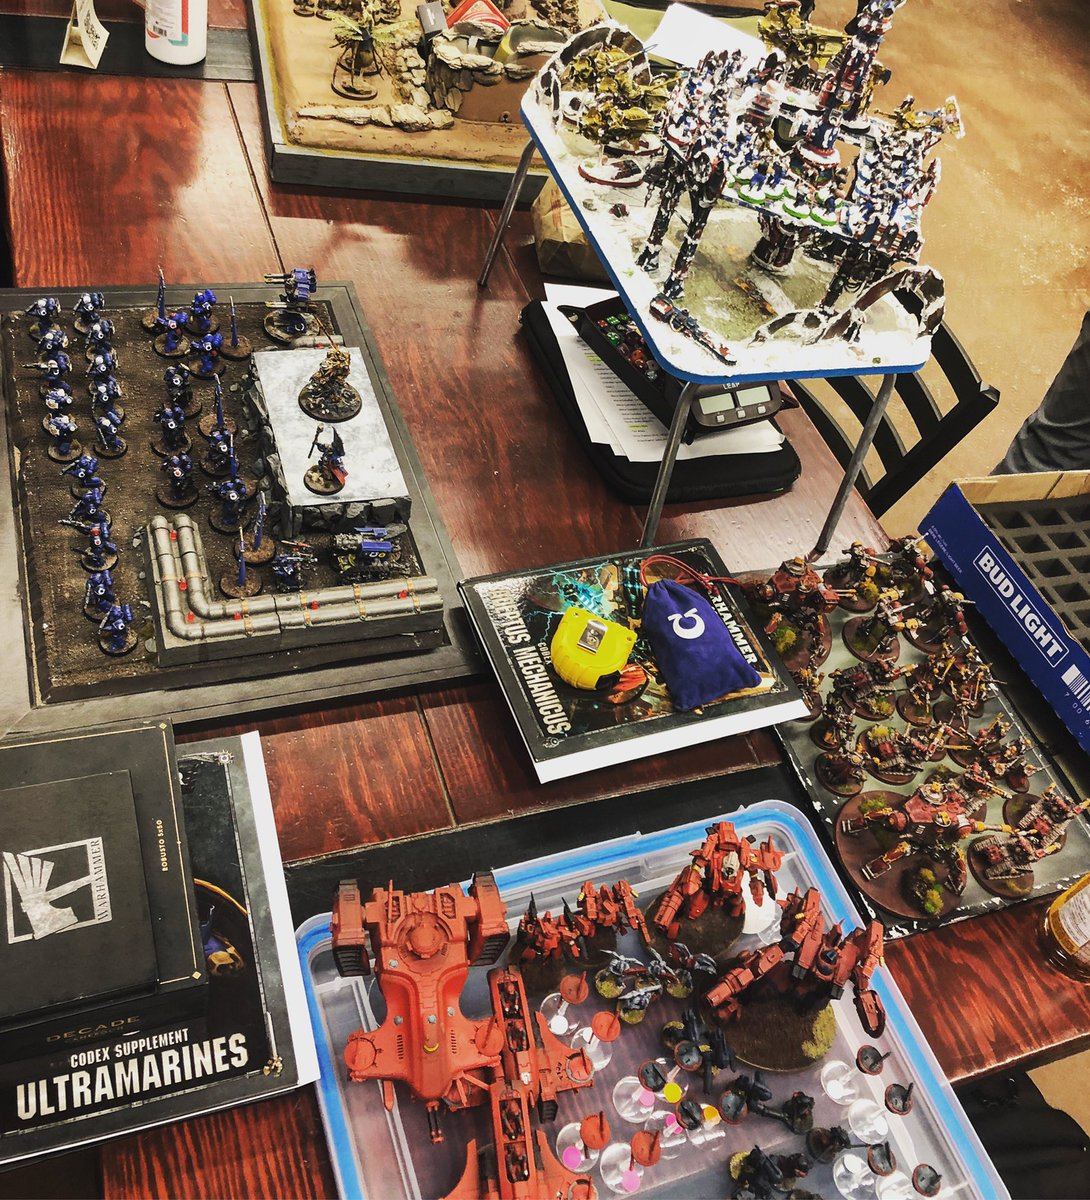 Readying the armies for our #Warhammer Tournament today. #GameFace 💪  . #gamesworkshop #citadelminiatures #warhammerfantasy #warhammerageofsigmar #warhammer40000 #warhammer40k #horusheresy #middlehammer #oldhammer #themonstermerchants #forgeworld #wargaming #roleplaying https://t.co/m25KnHxyQ5